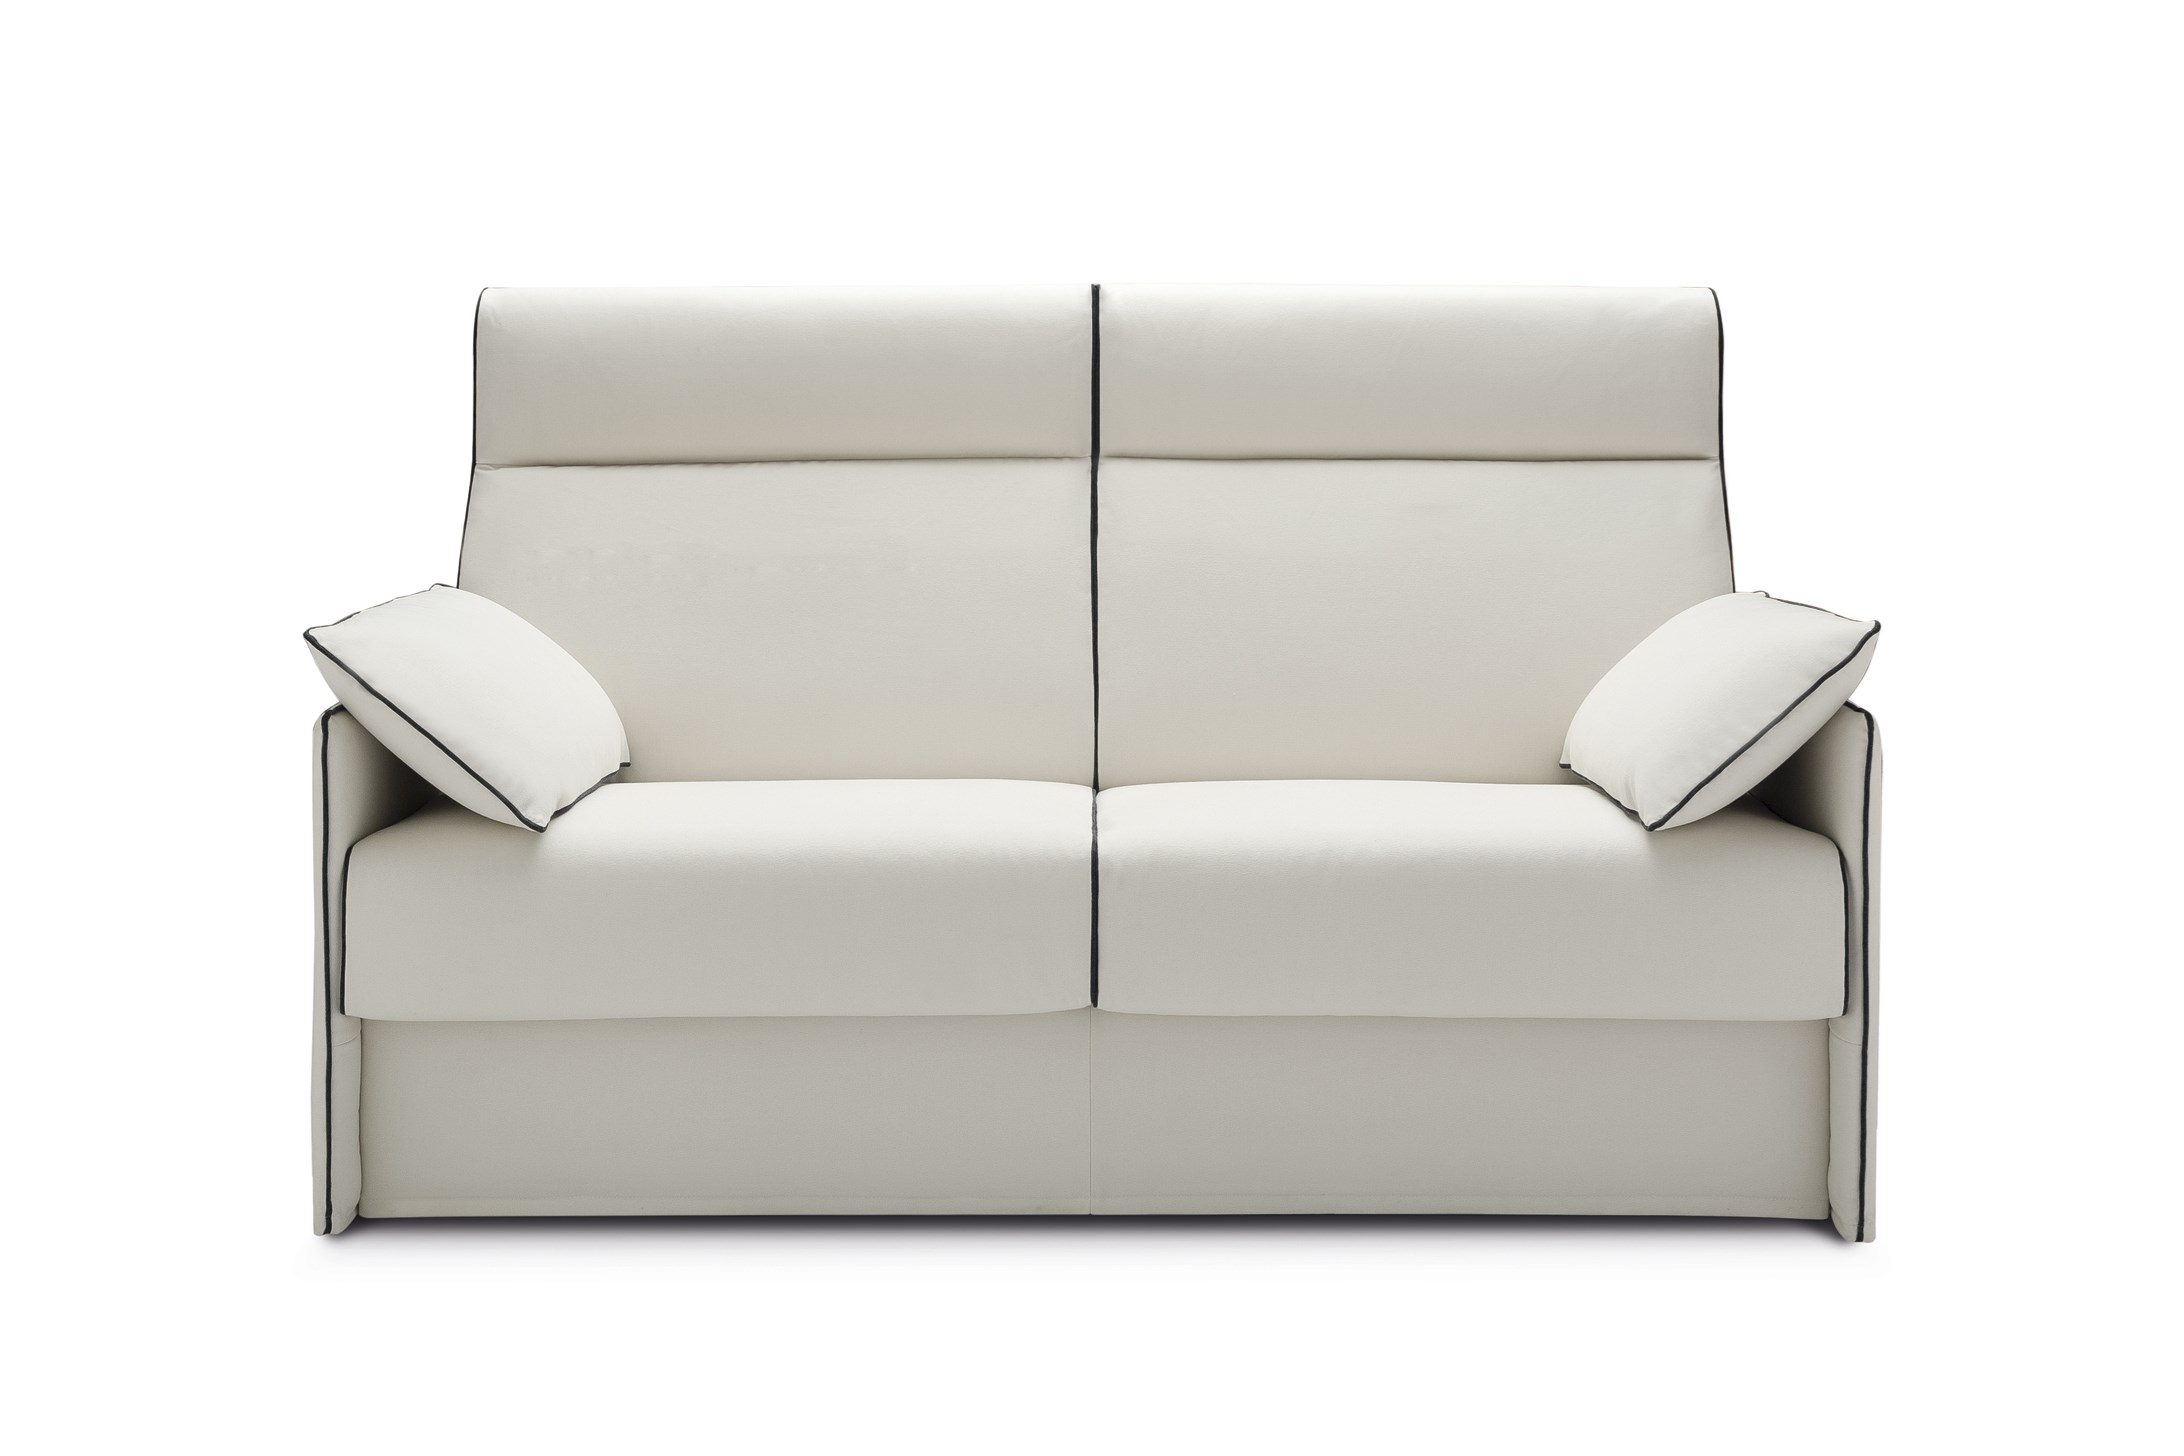 High quality elegant sofa bed - perpao.co.uk